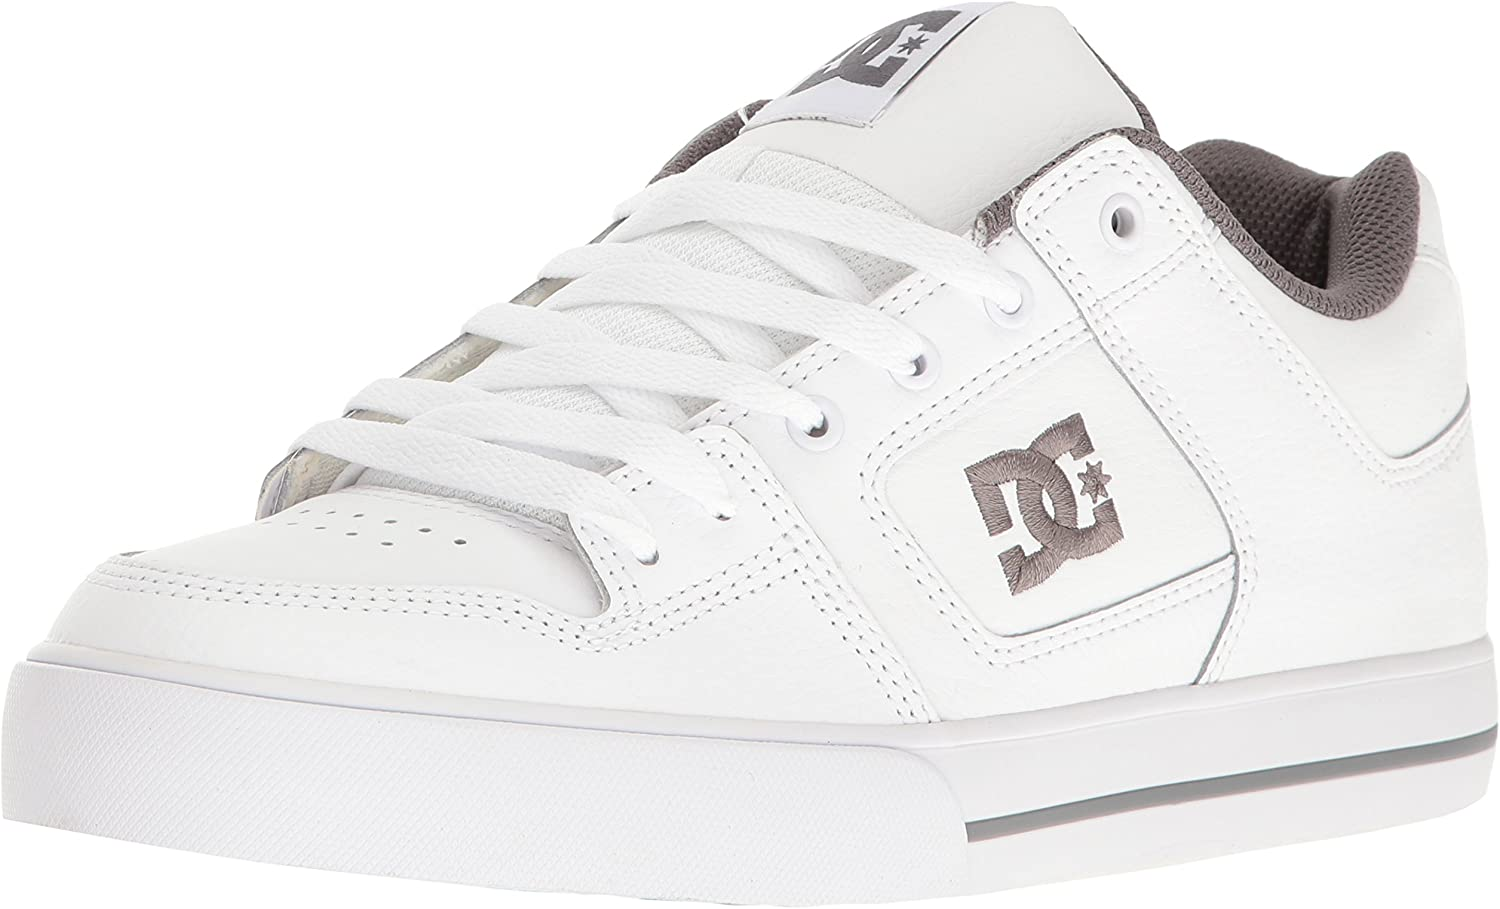 1ab7af94bbe3 DC Men's Action shoes,White Battleship White,12 M US Sports Pure  nwjvkb7527-Sporting goods